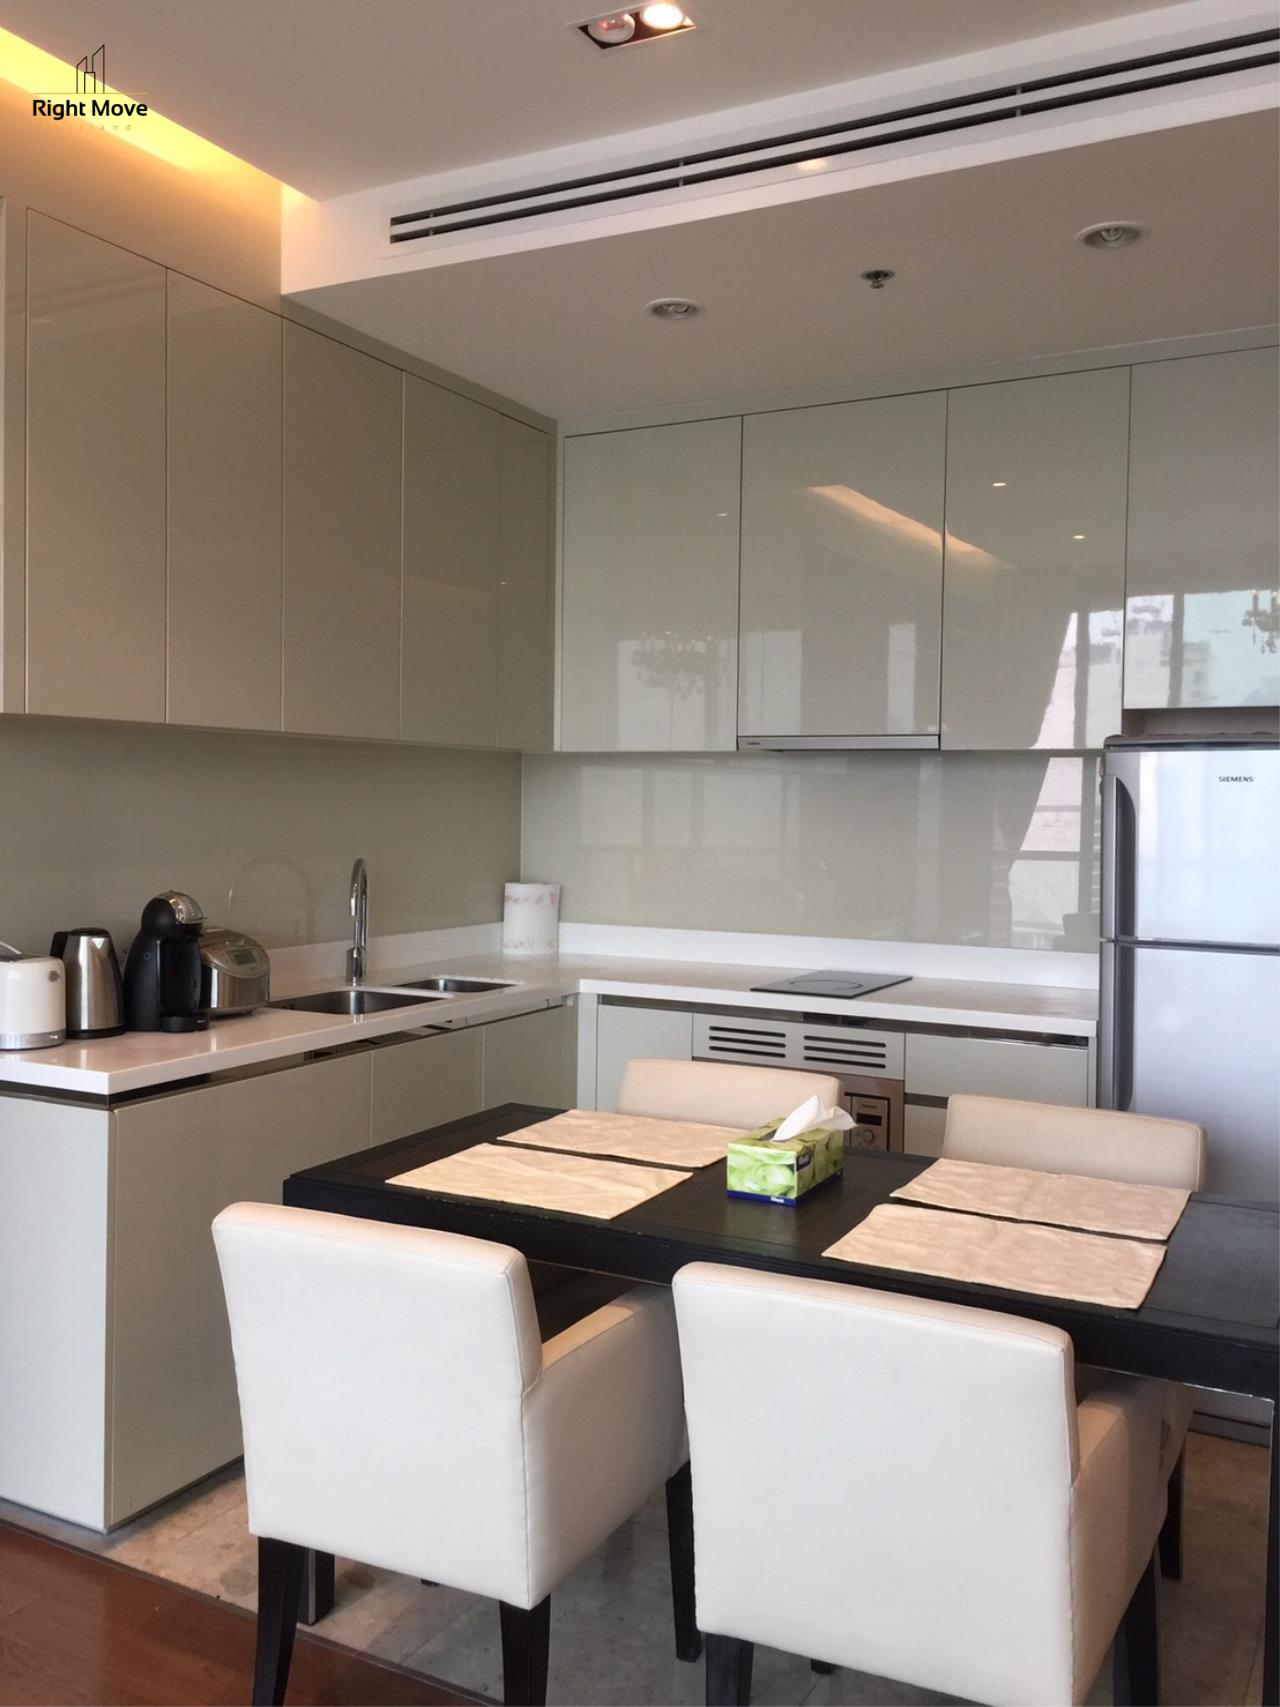 Right Move Thailand Agency's CA6532 The Address 28 For Rent 55,000 THB - 2 Bedrooms - 67 Sqm 2